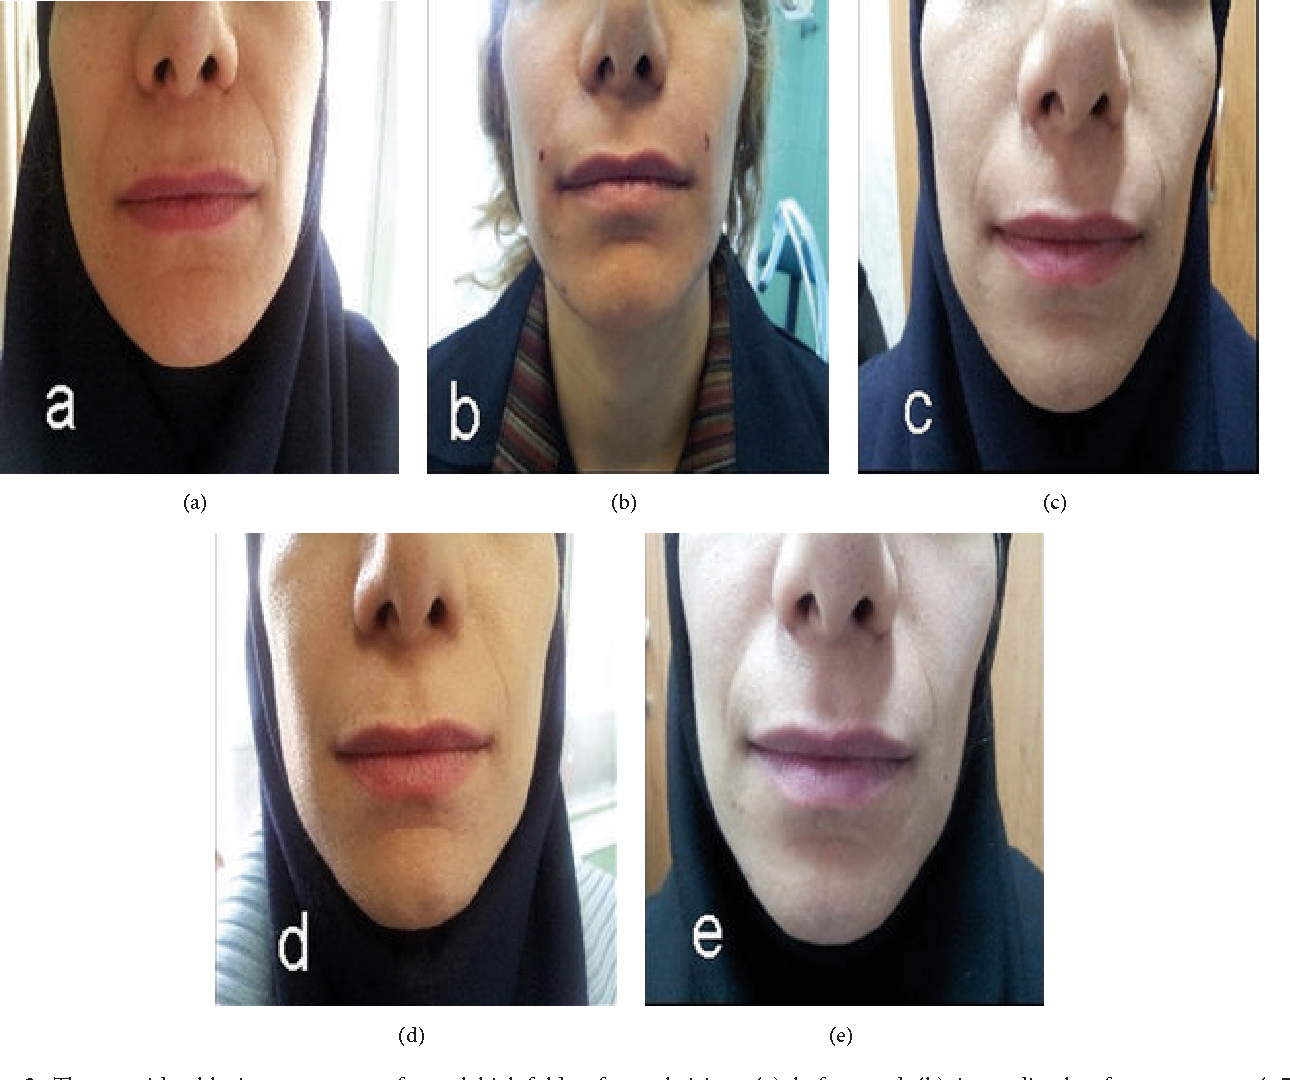 figure 2: the considerable improvement of nasolabial folds after subcision